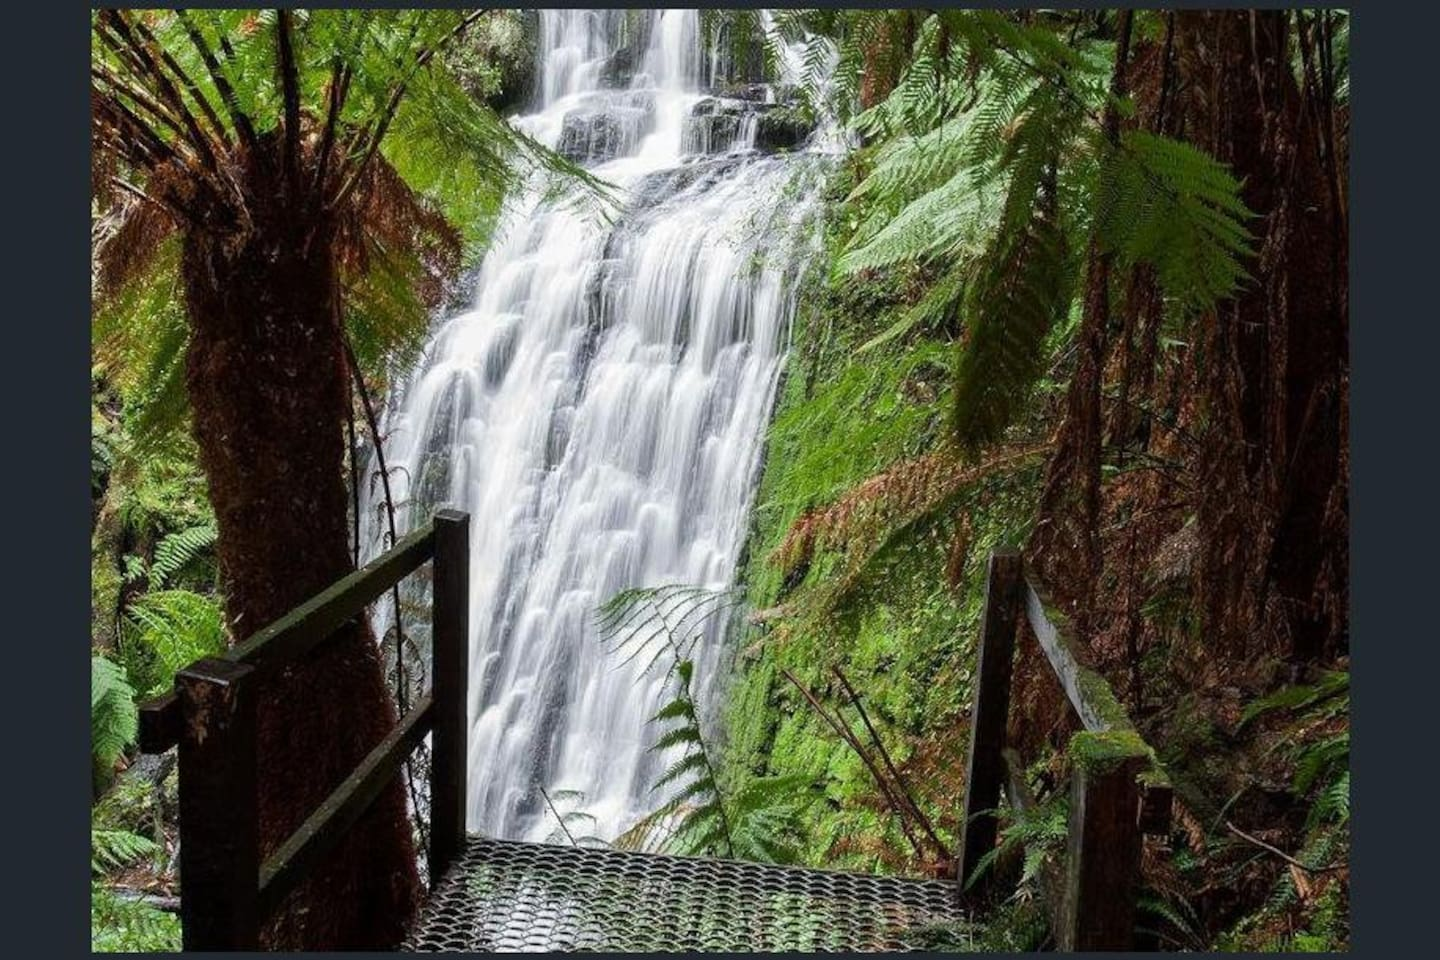 Discover private secluded waterfalls immersed in the ancient rainforest of The Source, Otways